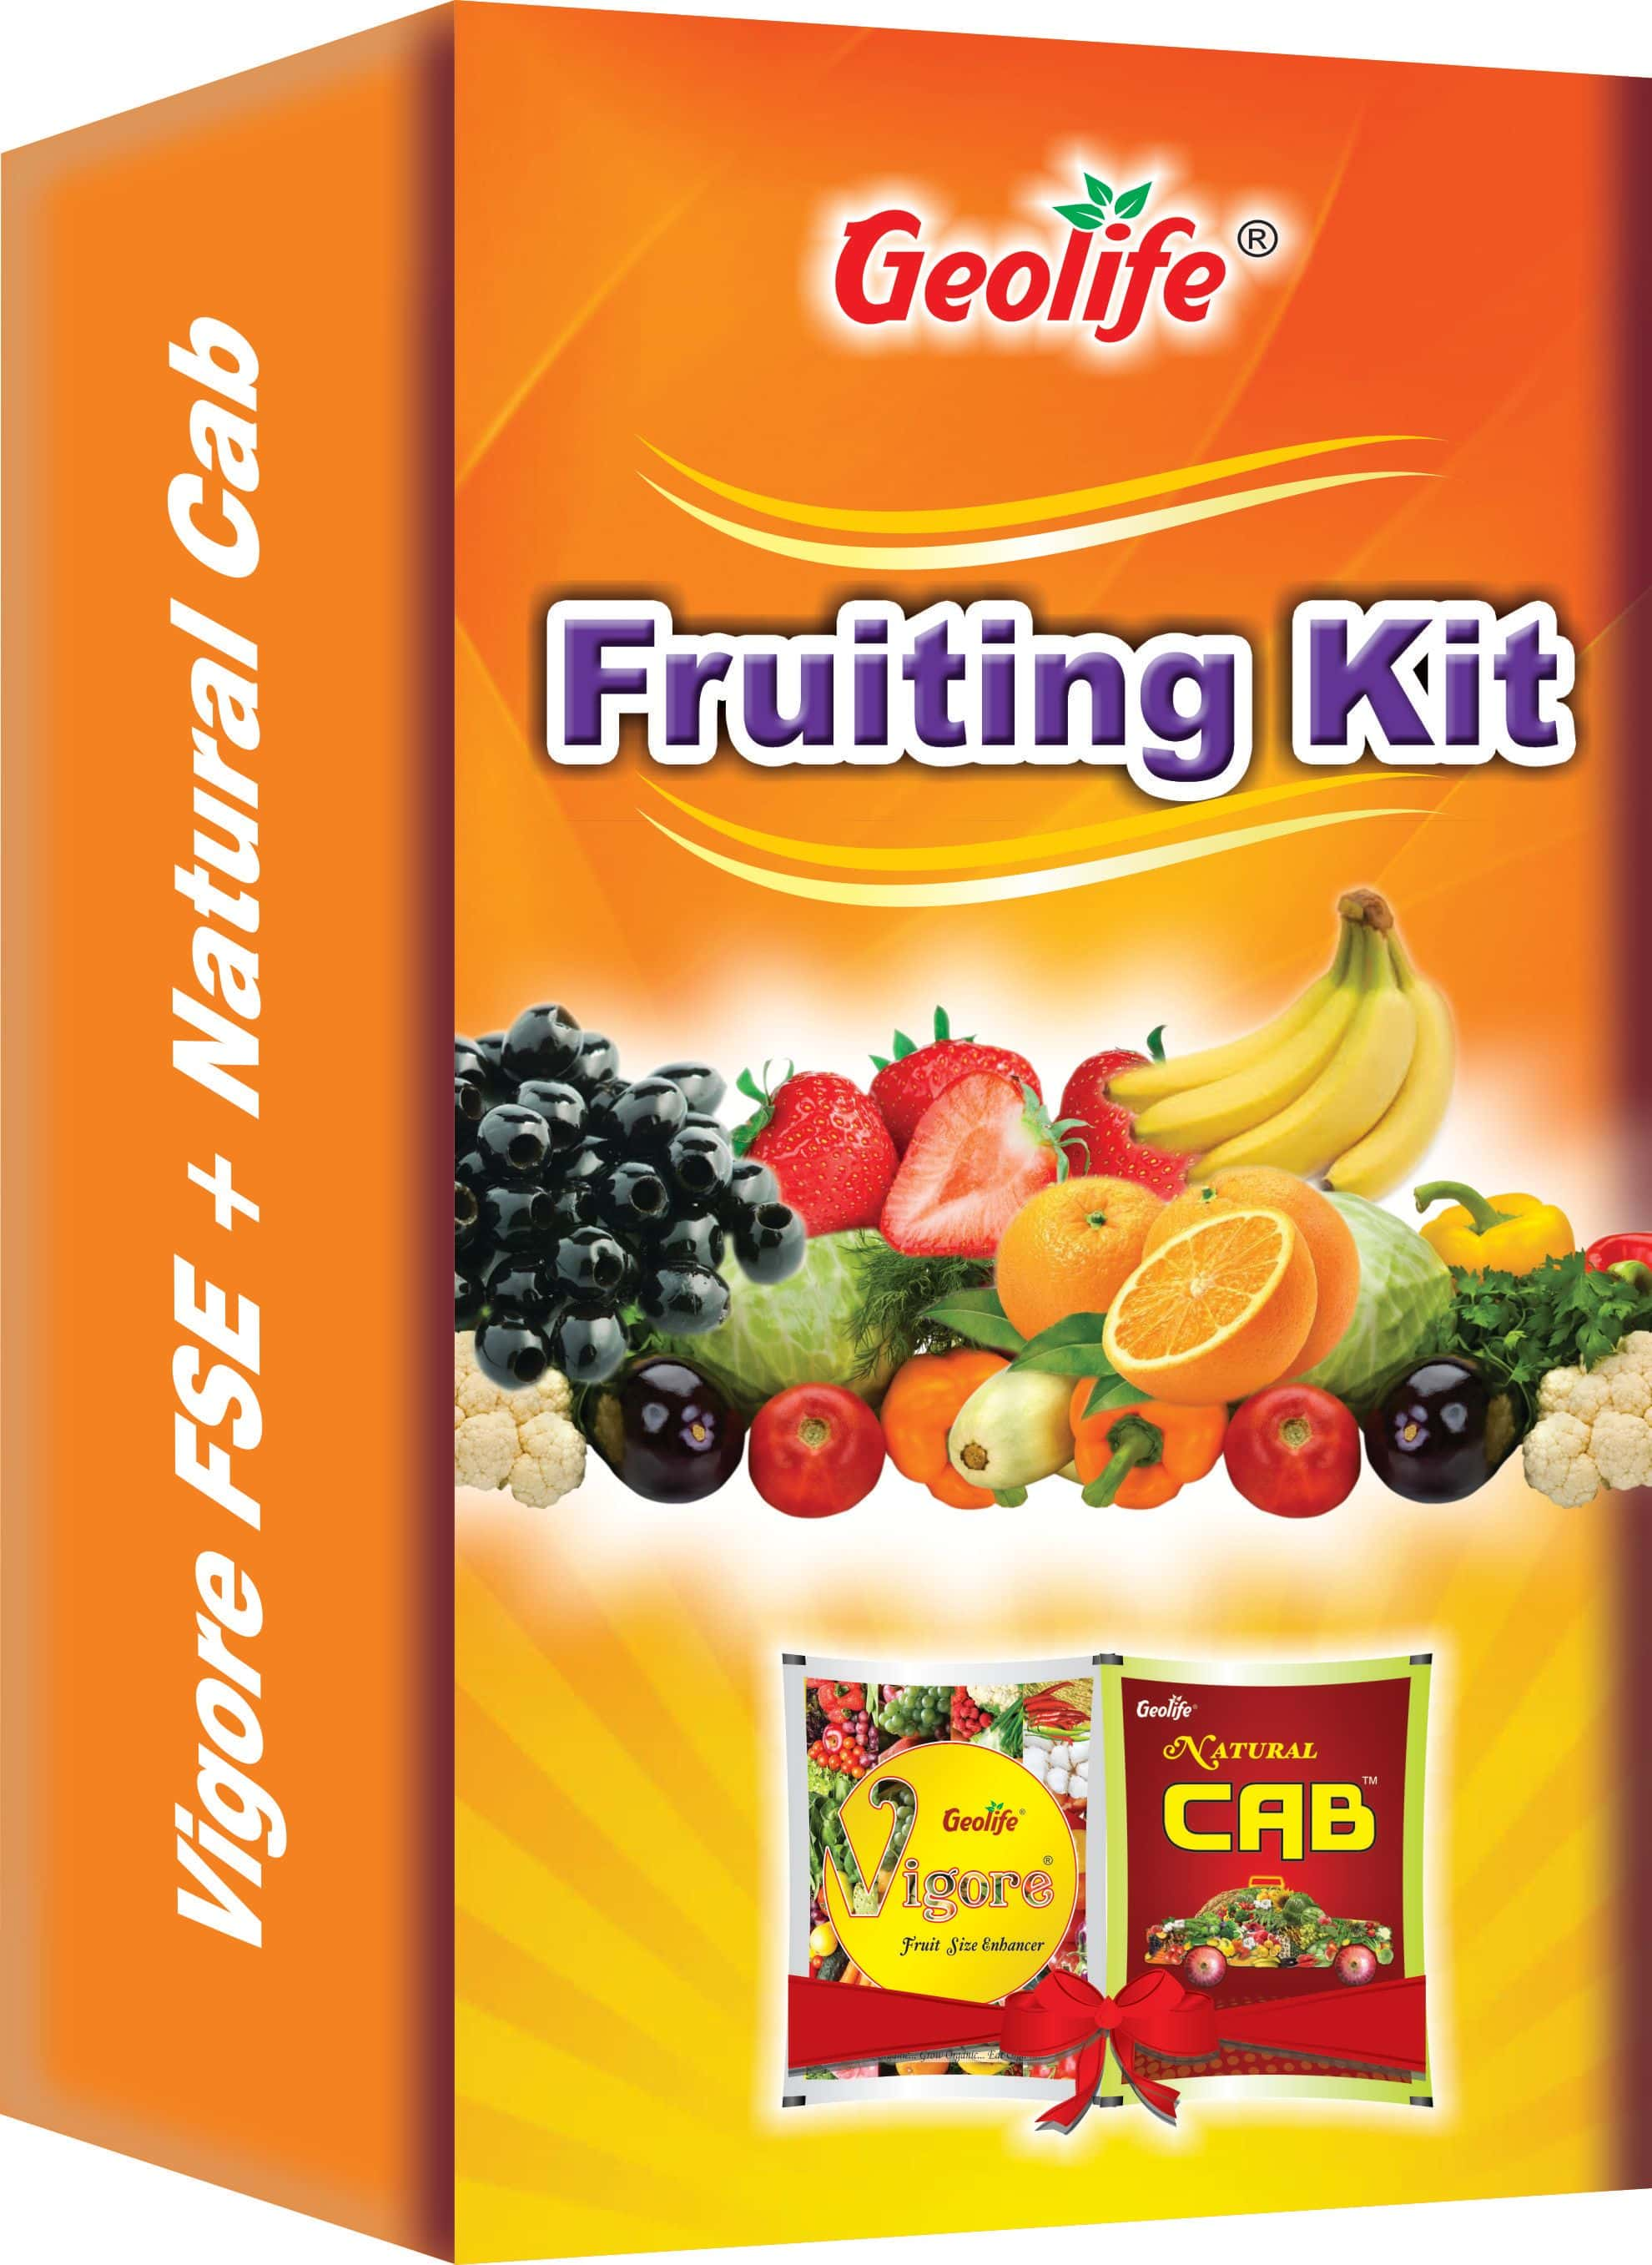 Fruiting Kit (Vigore Fruit Size Enhancer & Natural Cab)